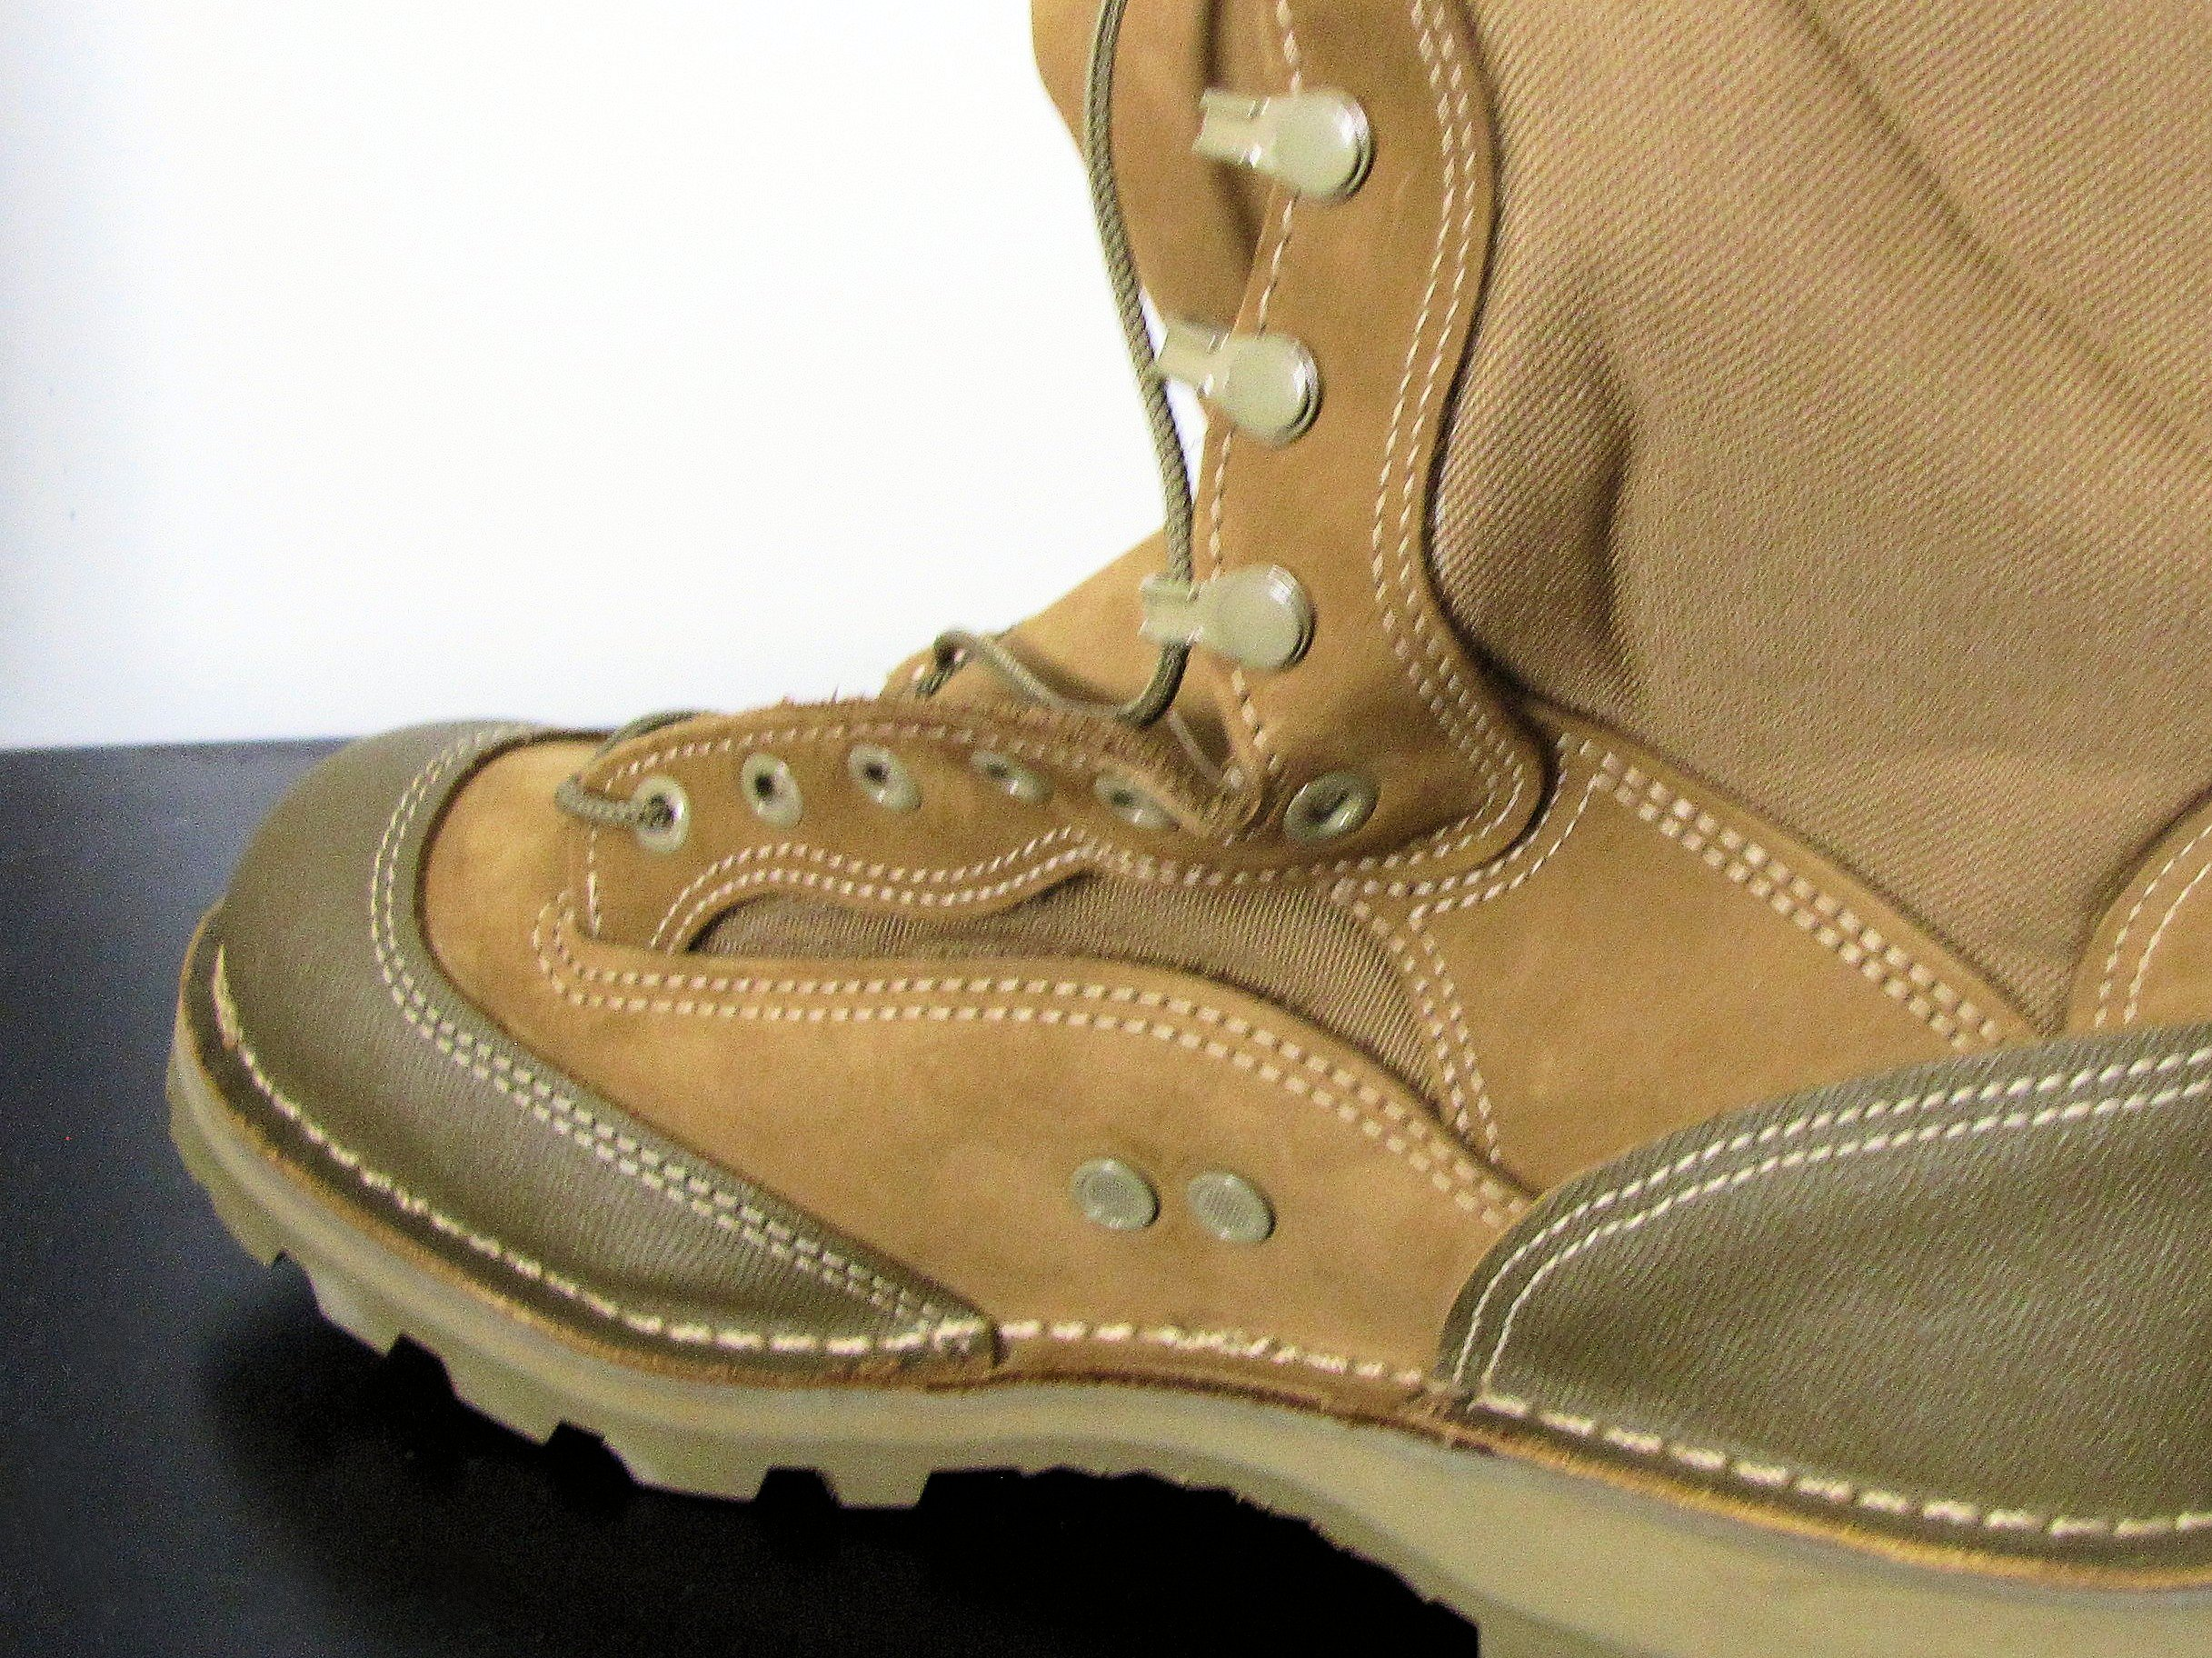 Clearanced American Made Rat Boots By Bates Brilliant Or